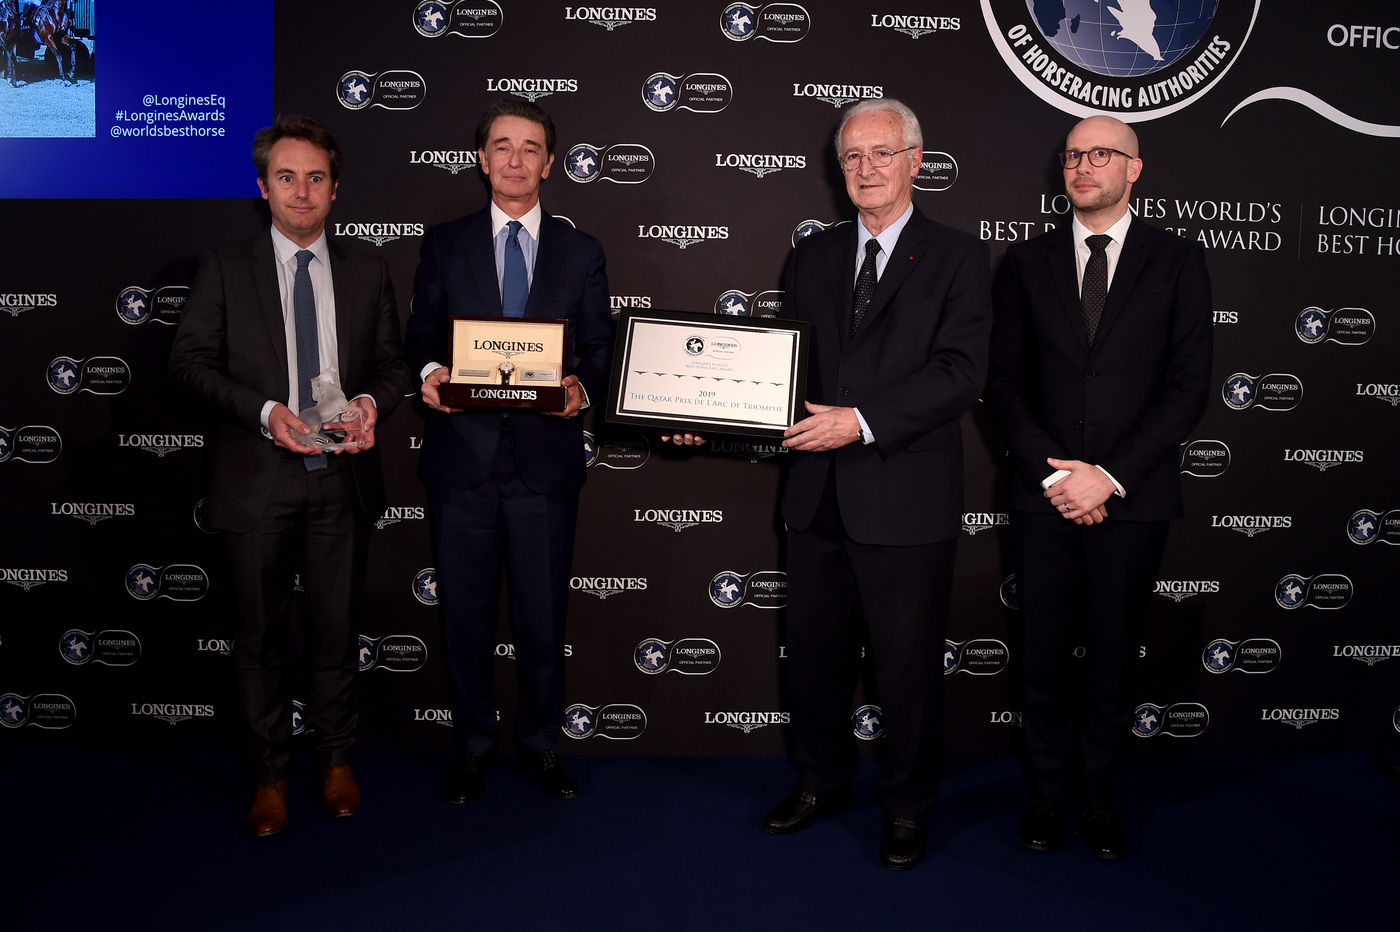 Longines Flat Racing Event: Crystal Ocean, Enable and Waldgeist crowned the 2019 Longines World's Best Racehorses, Qatar Prix de l'Arc de Triomphe named Longines World's Best Horse Race for the fourth time 10